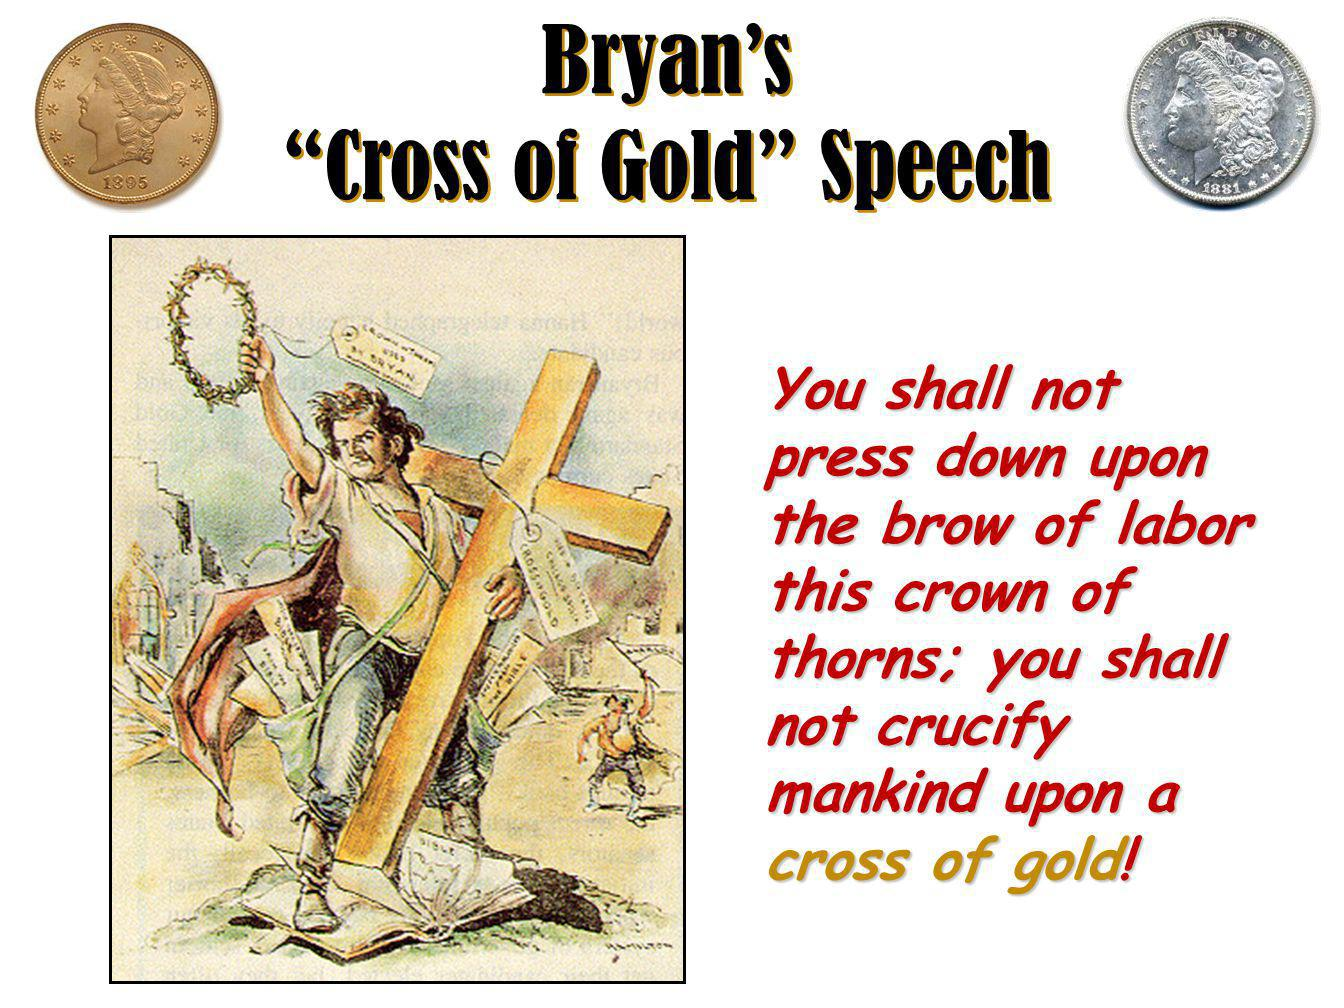 Bryan's Cross of Gold Speech You shall not press down upon the brow of labor this crown of thorns; you shall not crucify mankind upon a cross of gold!